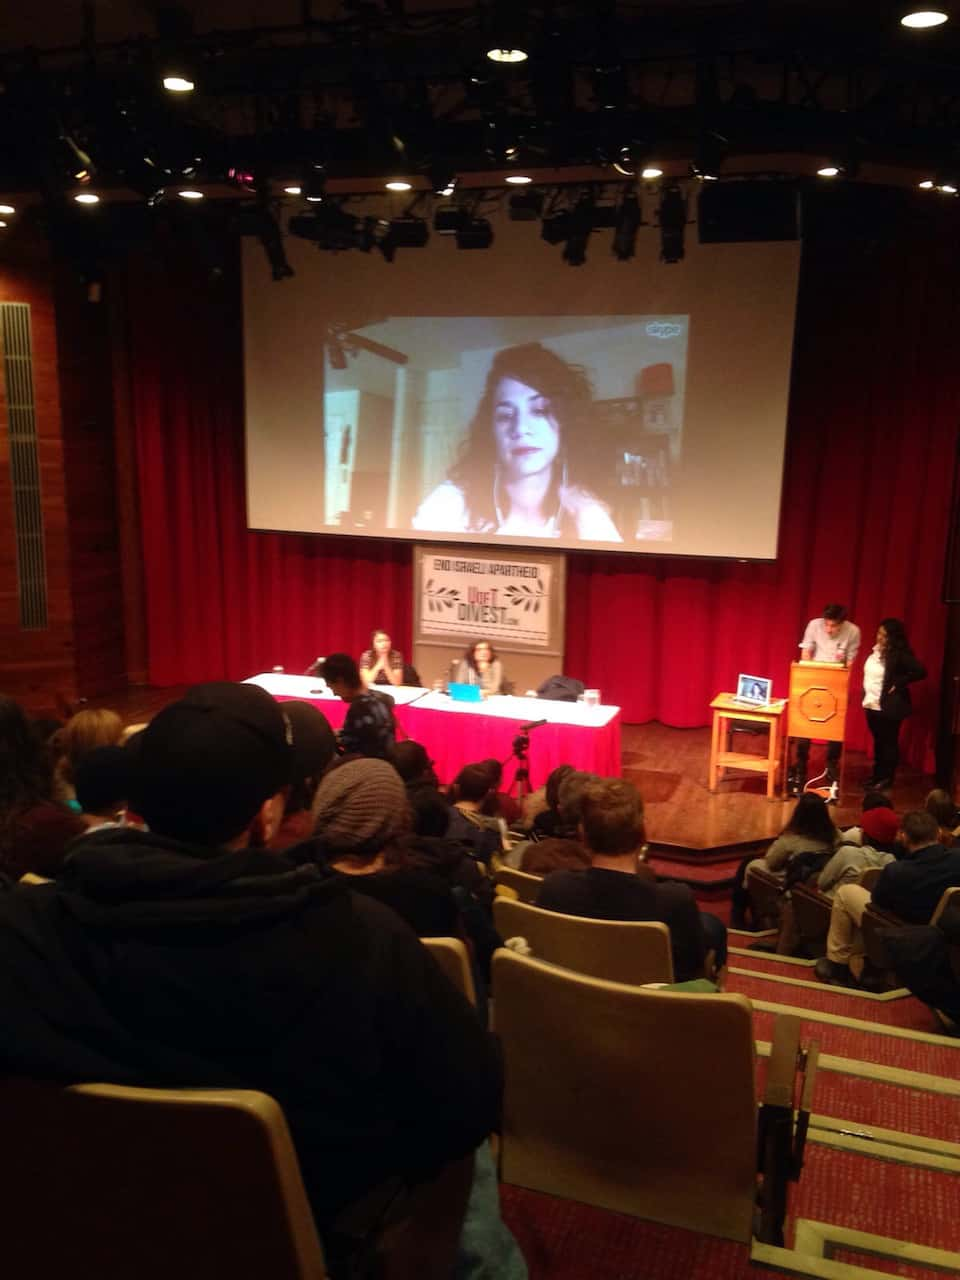 U of T Divest event disrupted by Jewish Defense League